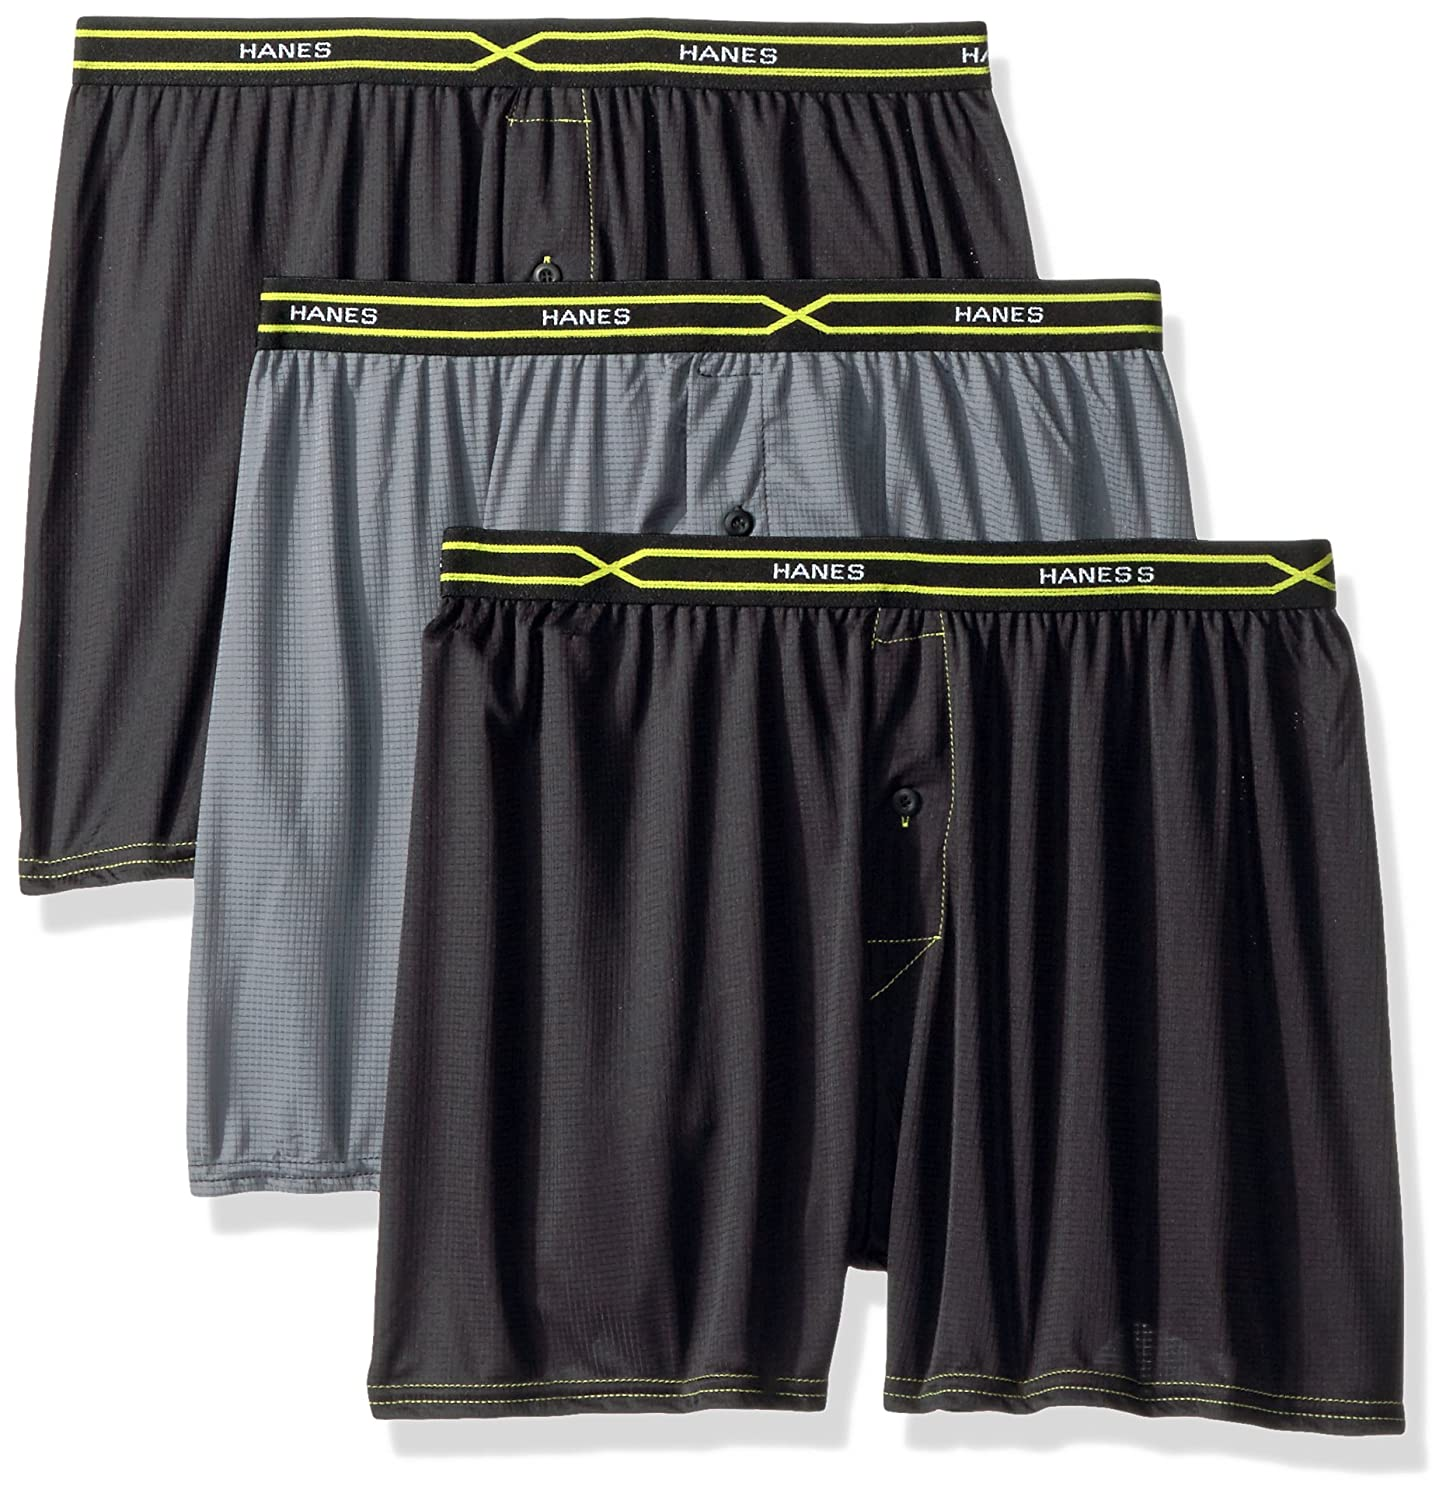 Hanes Men's 3-Pack X-Temp Performance Cool Checker Polyester Boxers PXBCA3